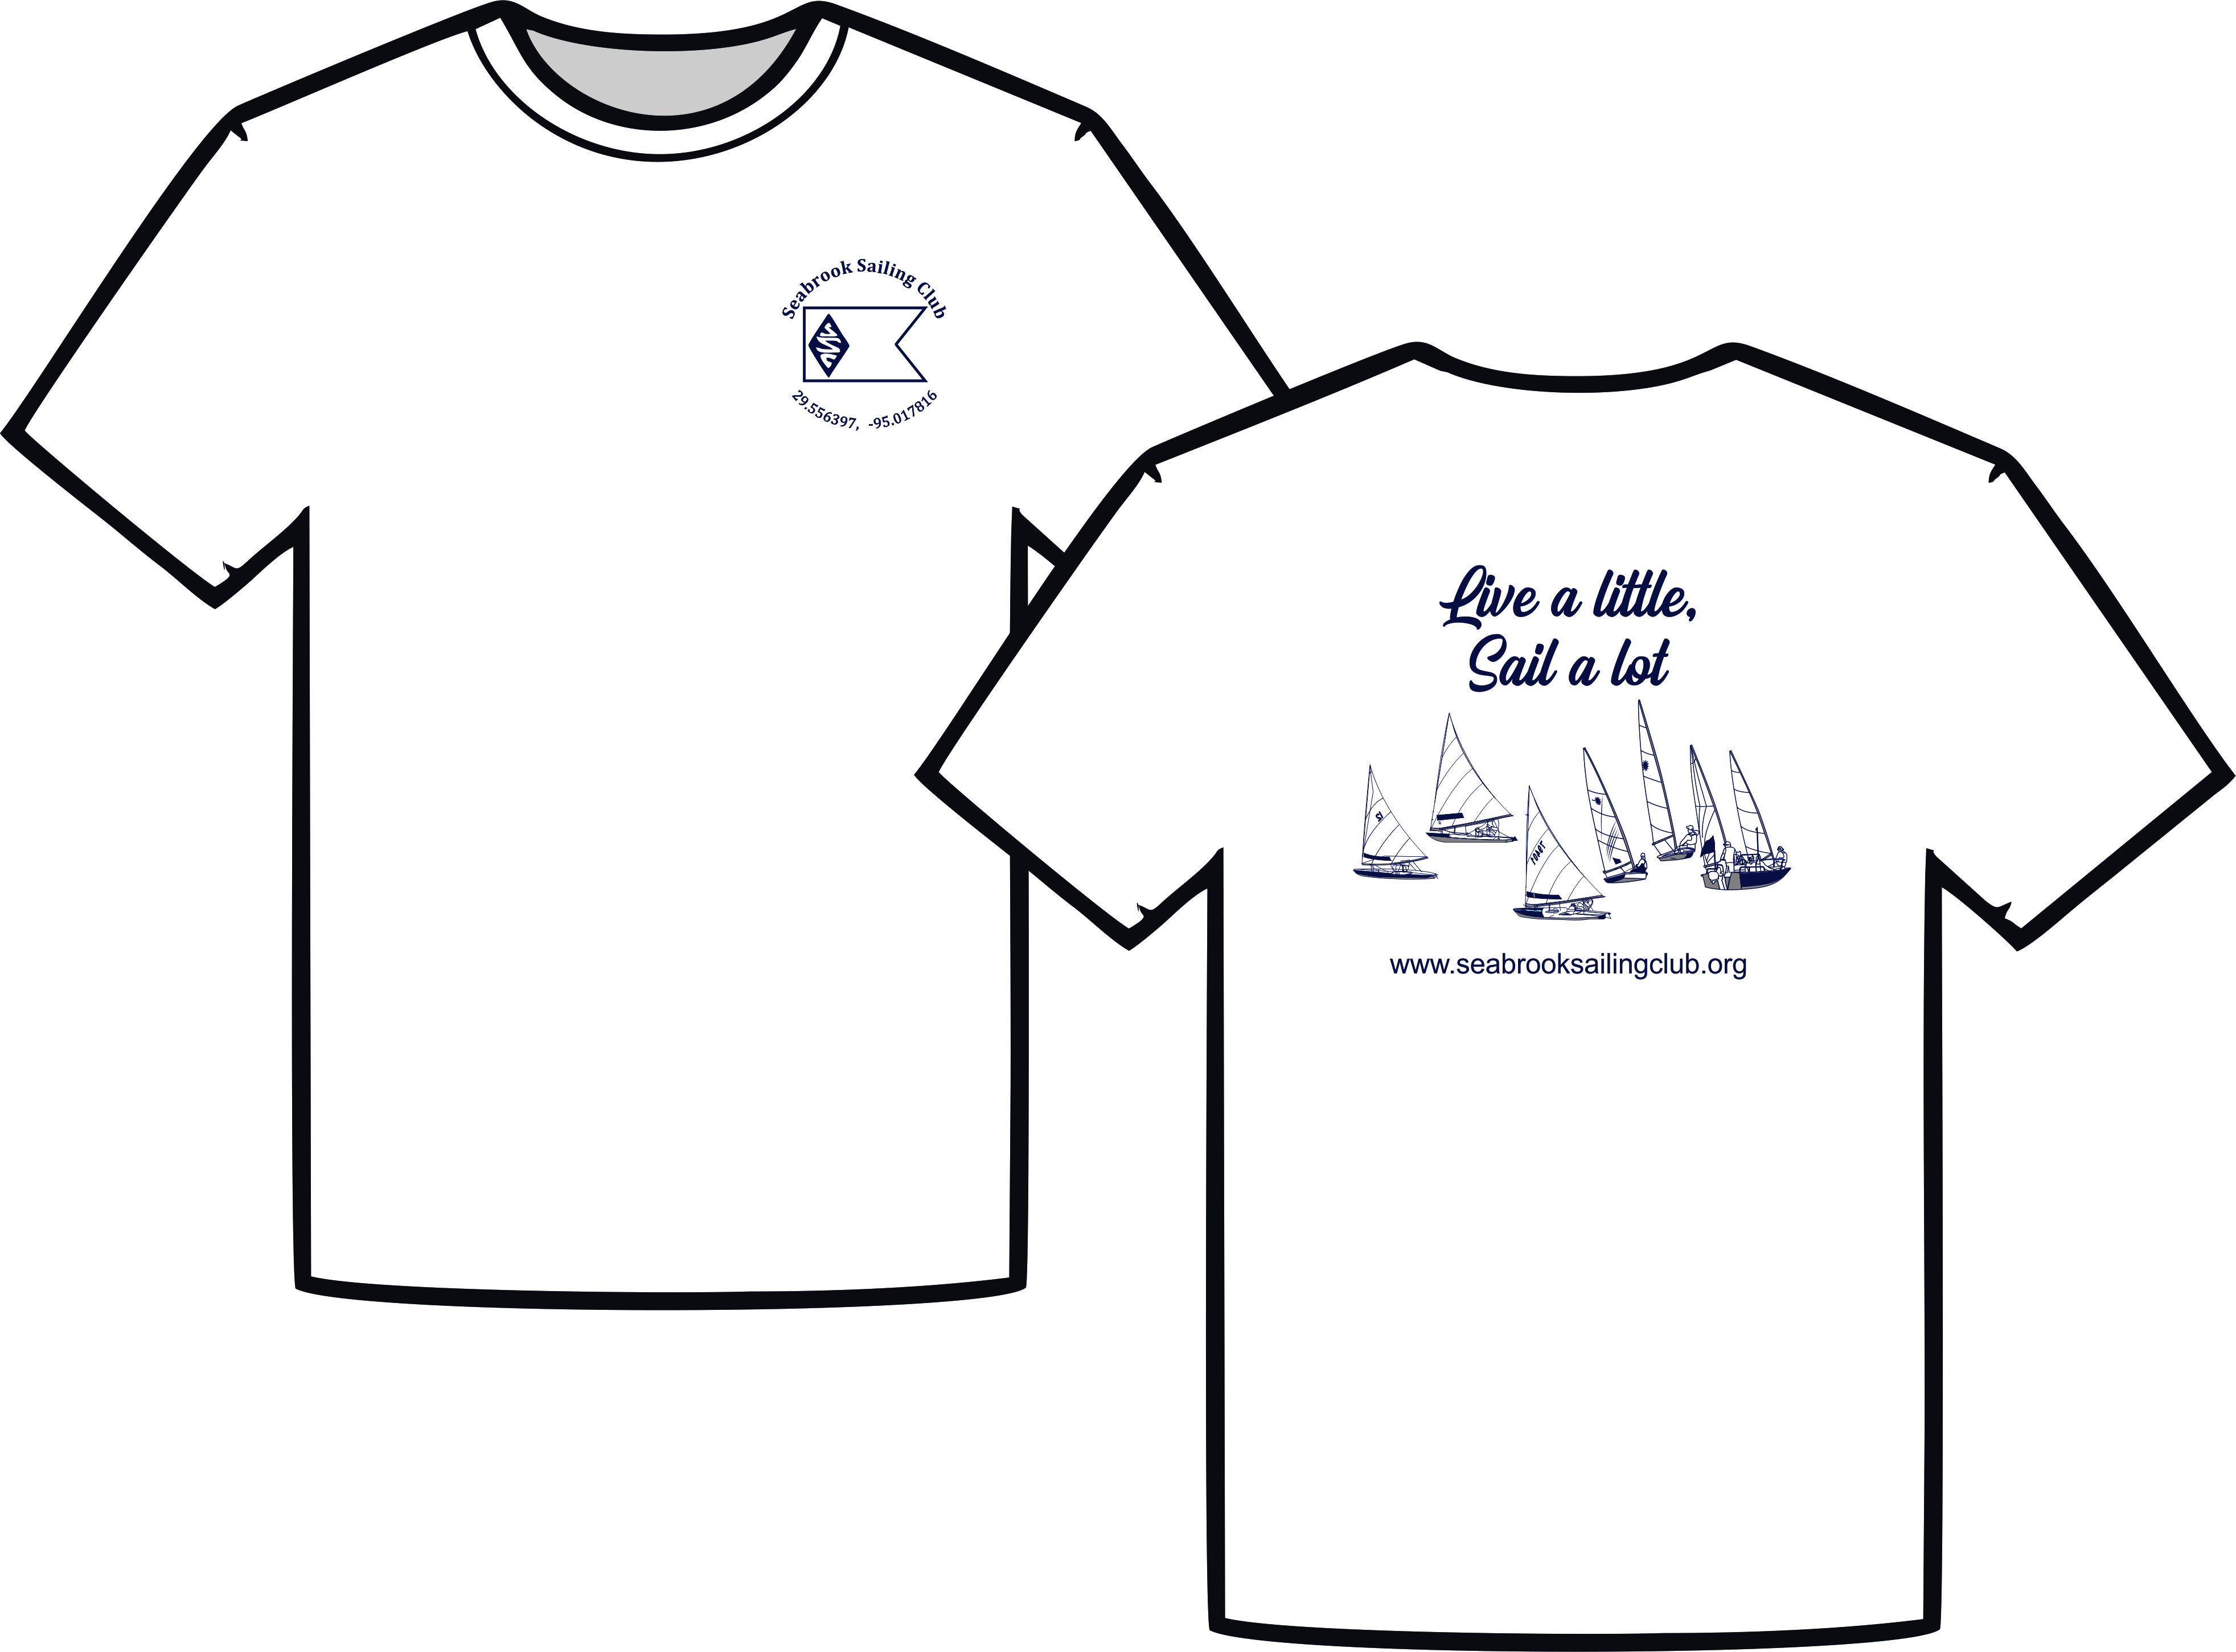 ssc shirt Short Sleeve